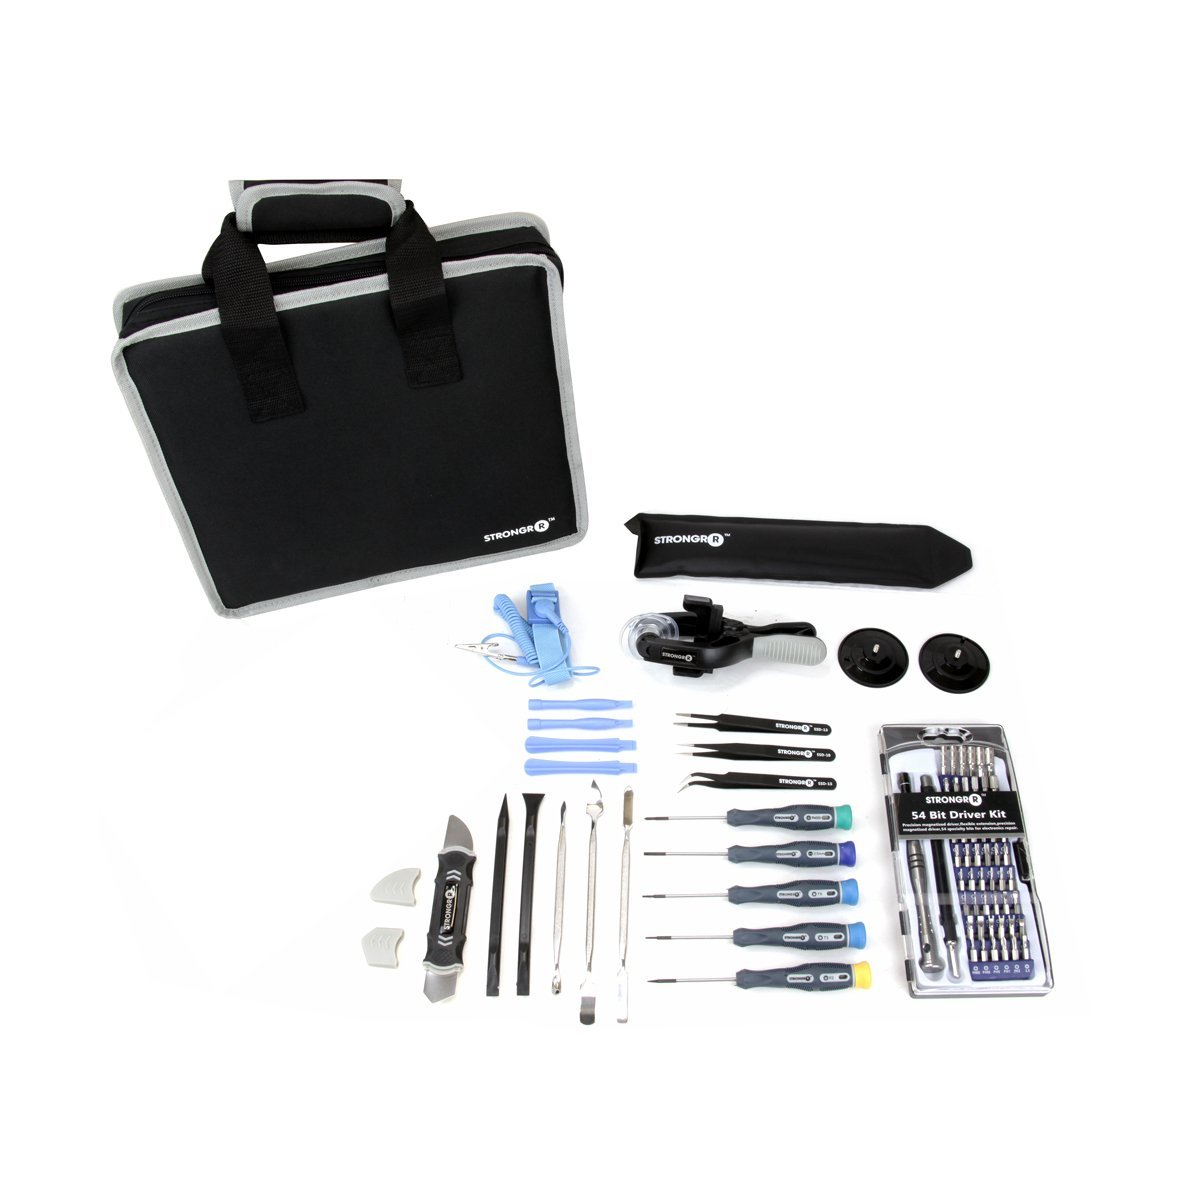 "LB1 High Performance Electronics Complete Professional Precision Disassembly Tool Kit for Repairing HP E1Y28UT#ABA 15.6"" LED Notebook, Intel Core i5-3340M 2.70GHz Repair Hand Tool Set"